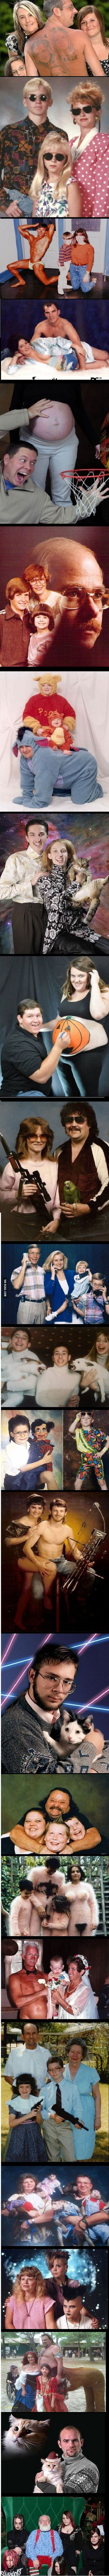 Just some awkward family photos...these never get old